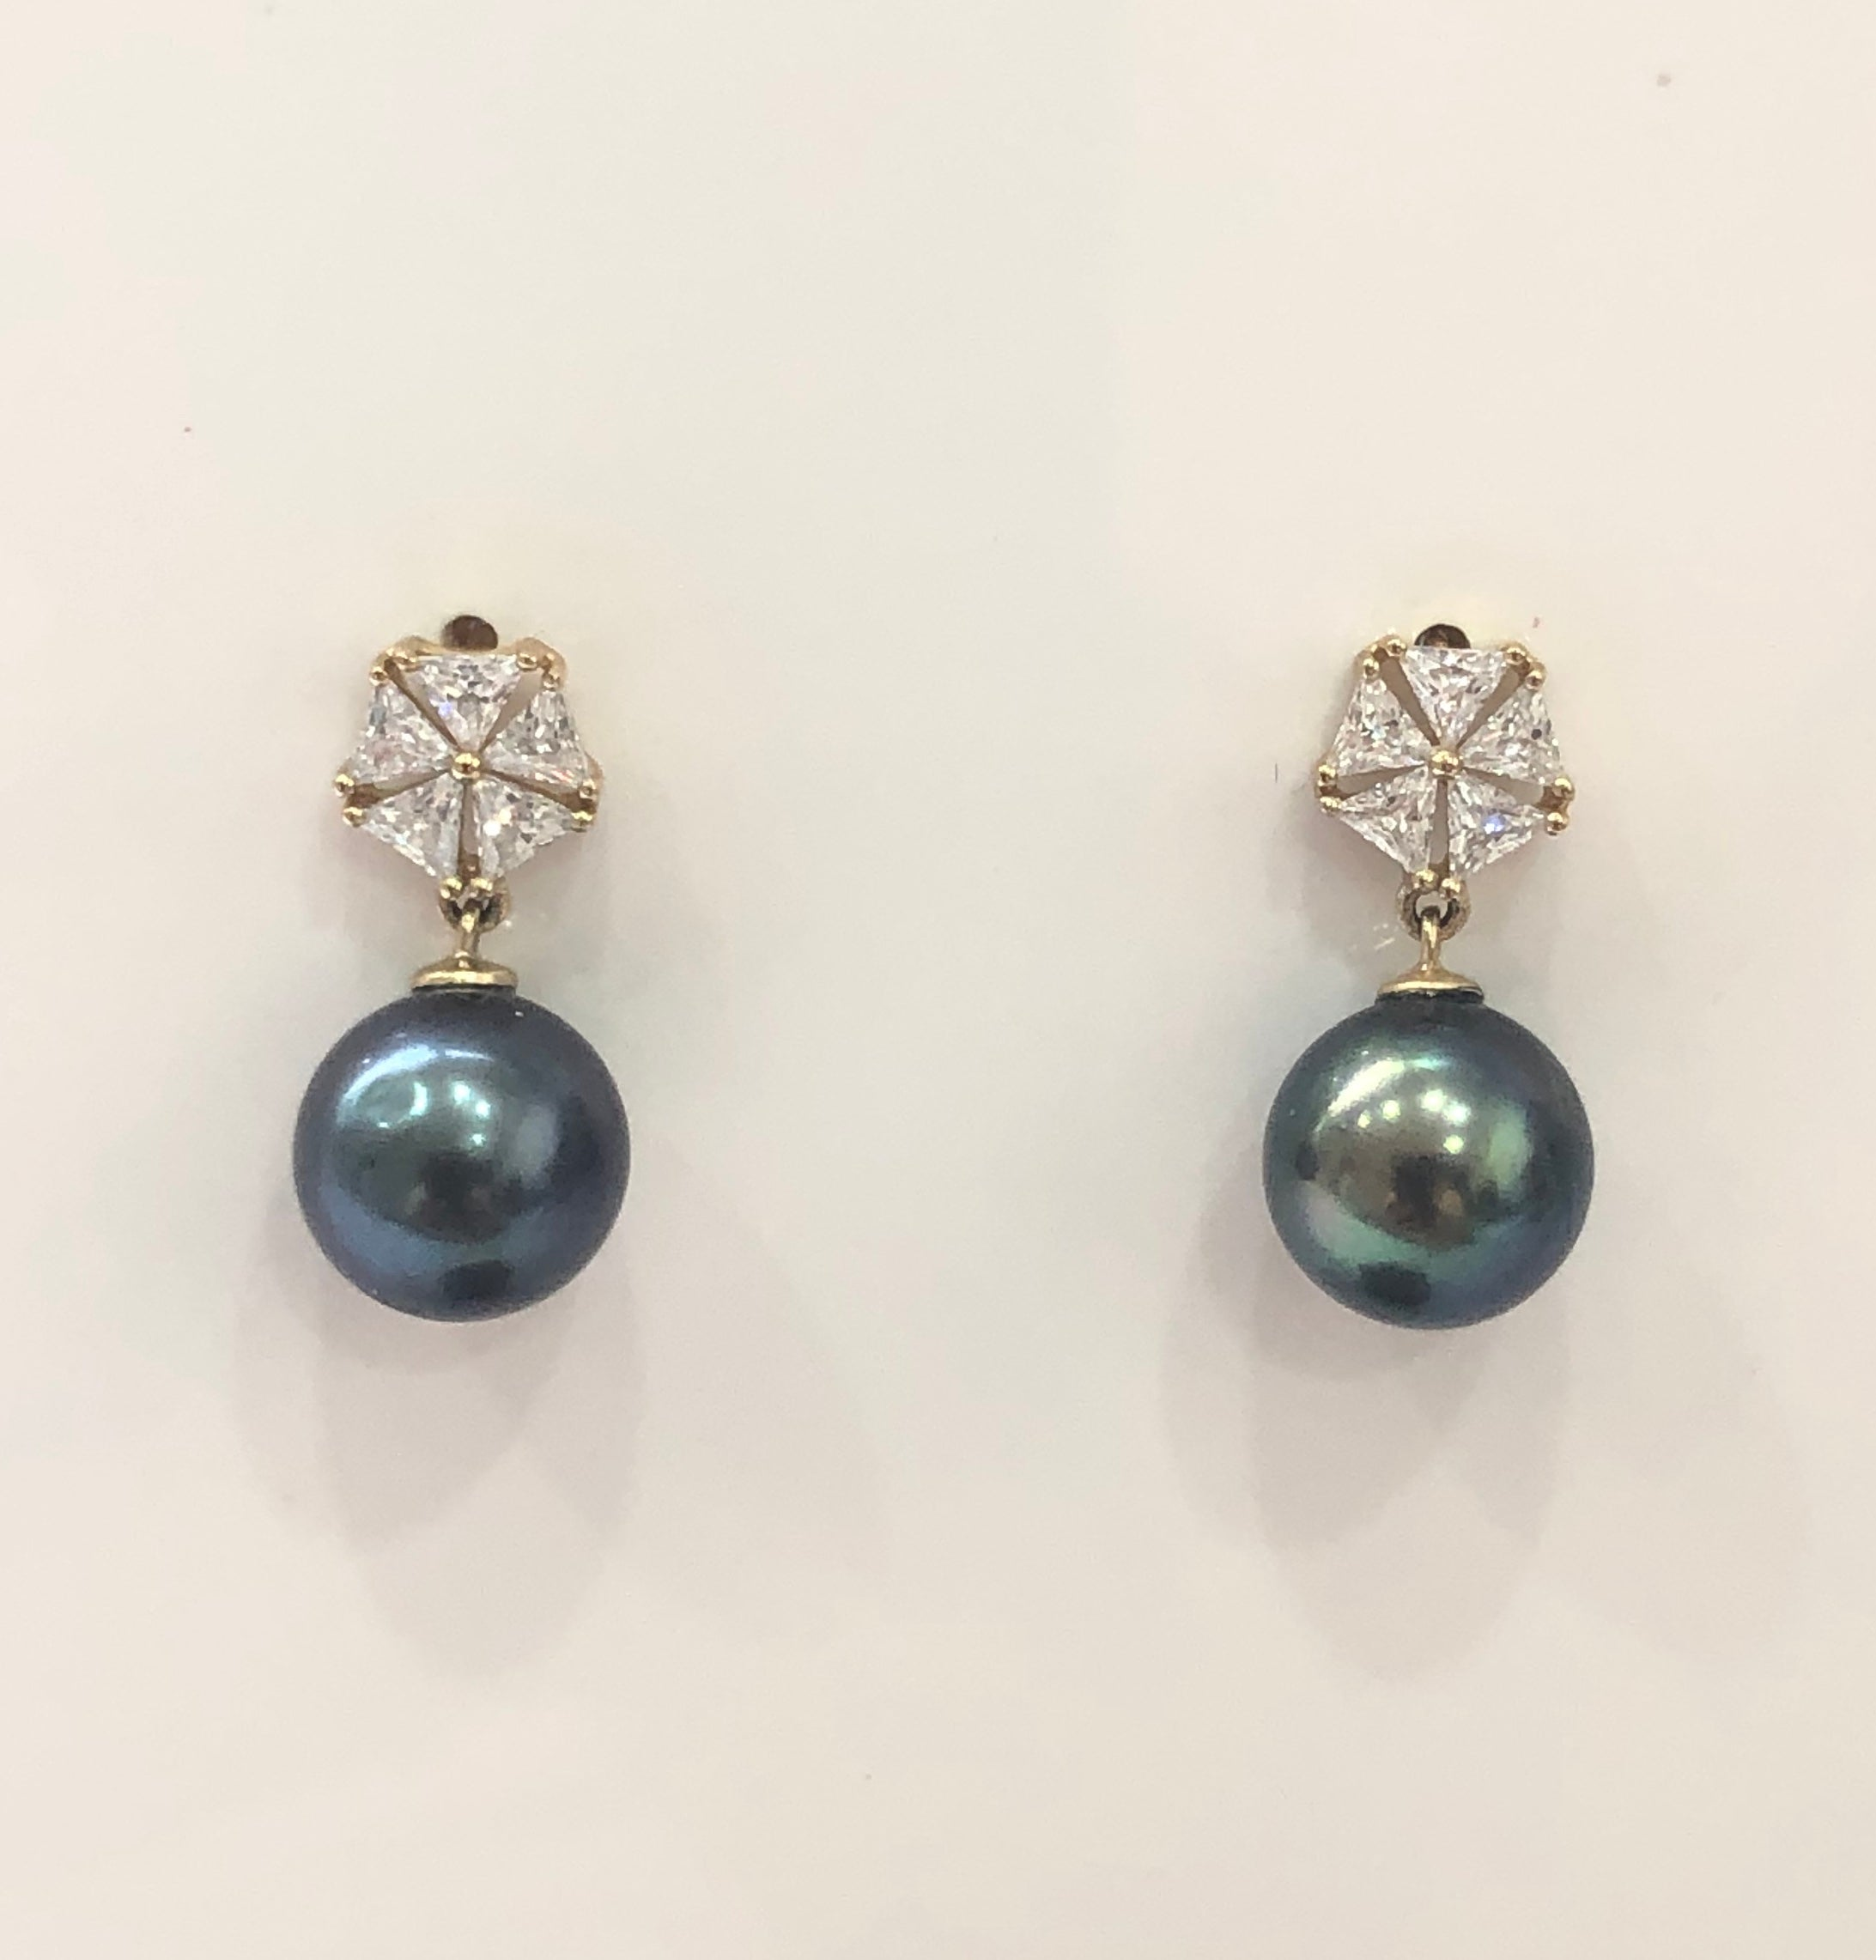 9ct Gold Drop Earrings With Black Tahitian Pearl -  05